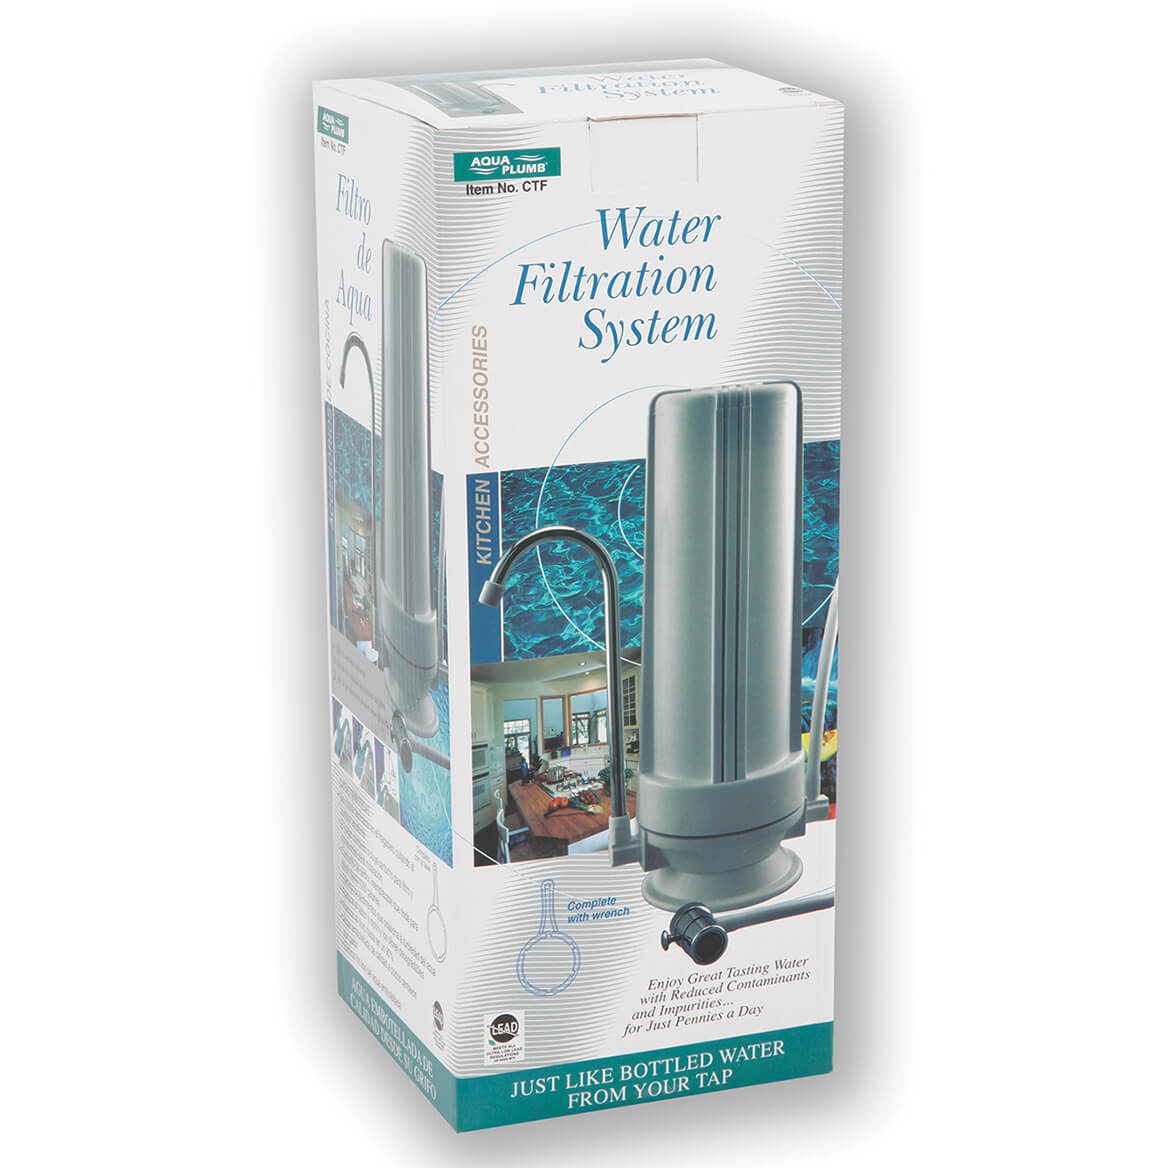 Water Filtration System-369932